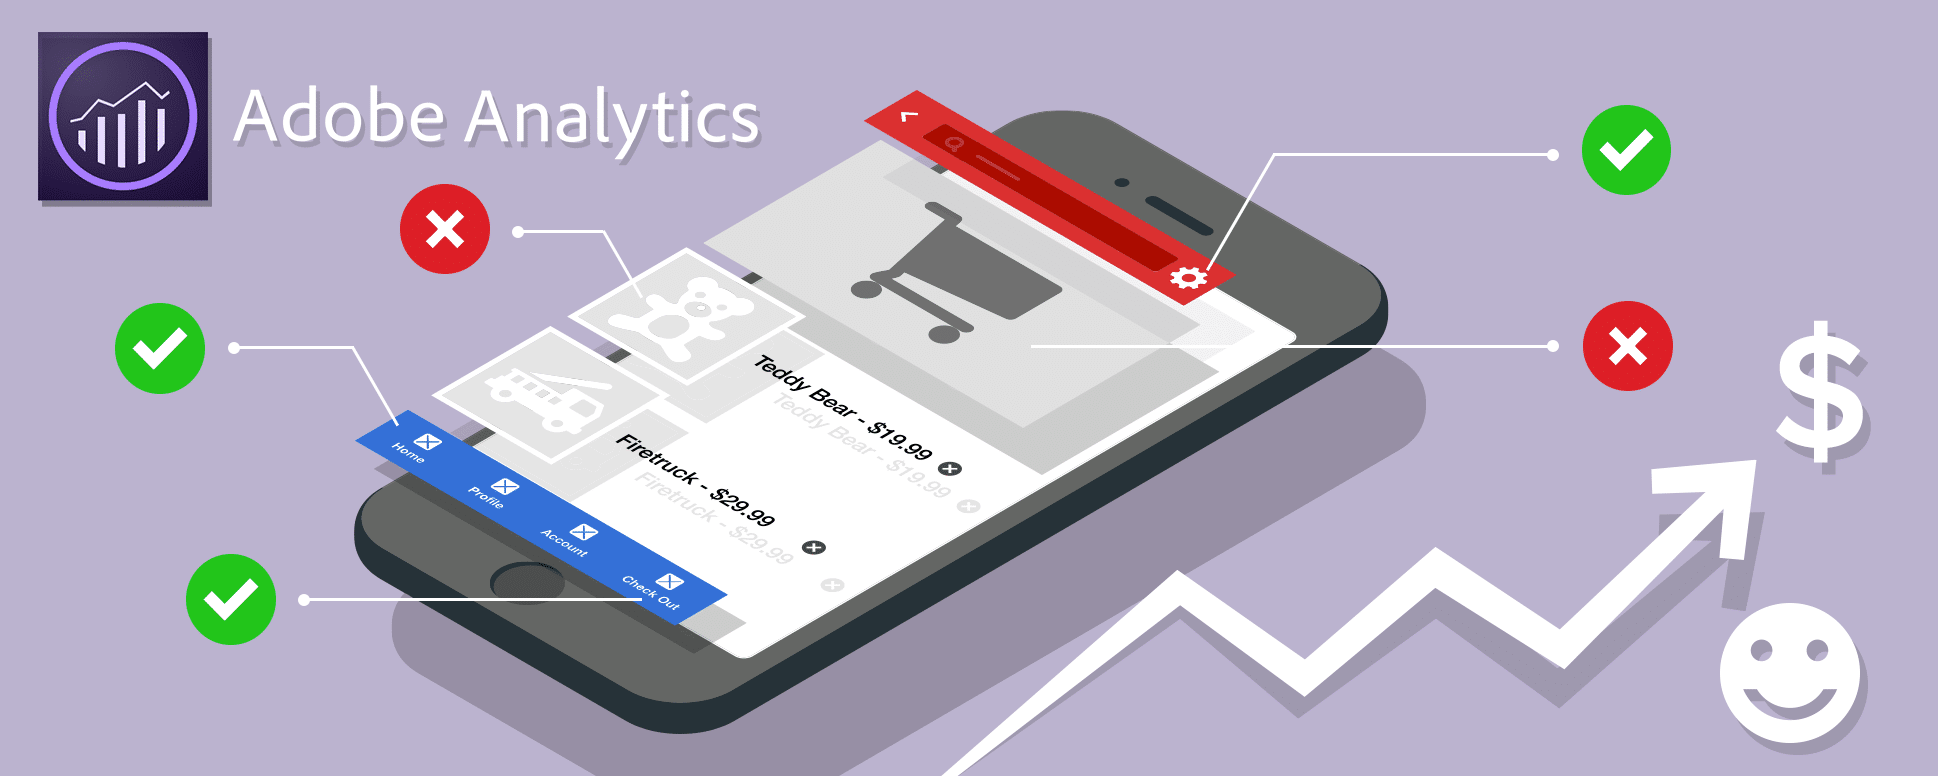 Toy Retailer: Using Adobe Analytics to Understand the Customer Experience / Increase Conversions